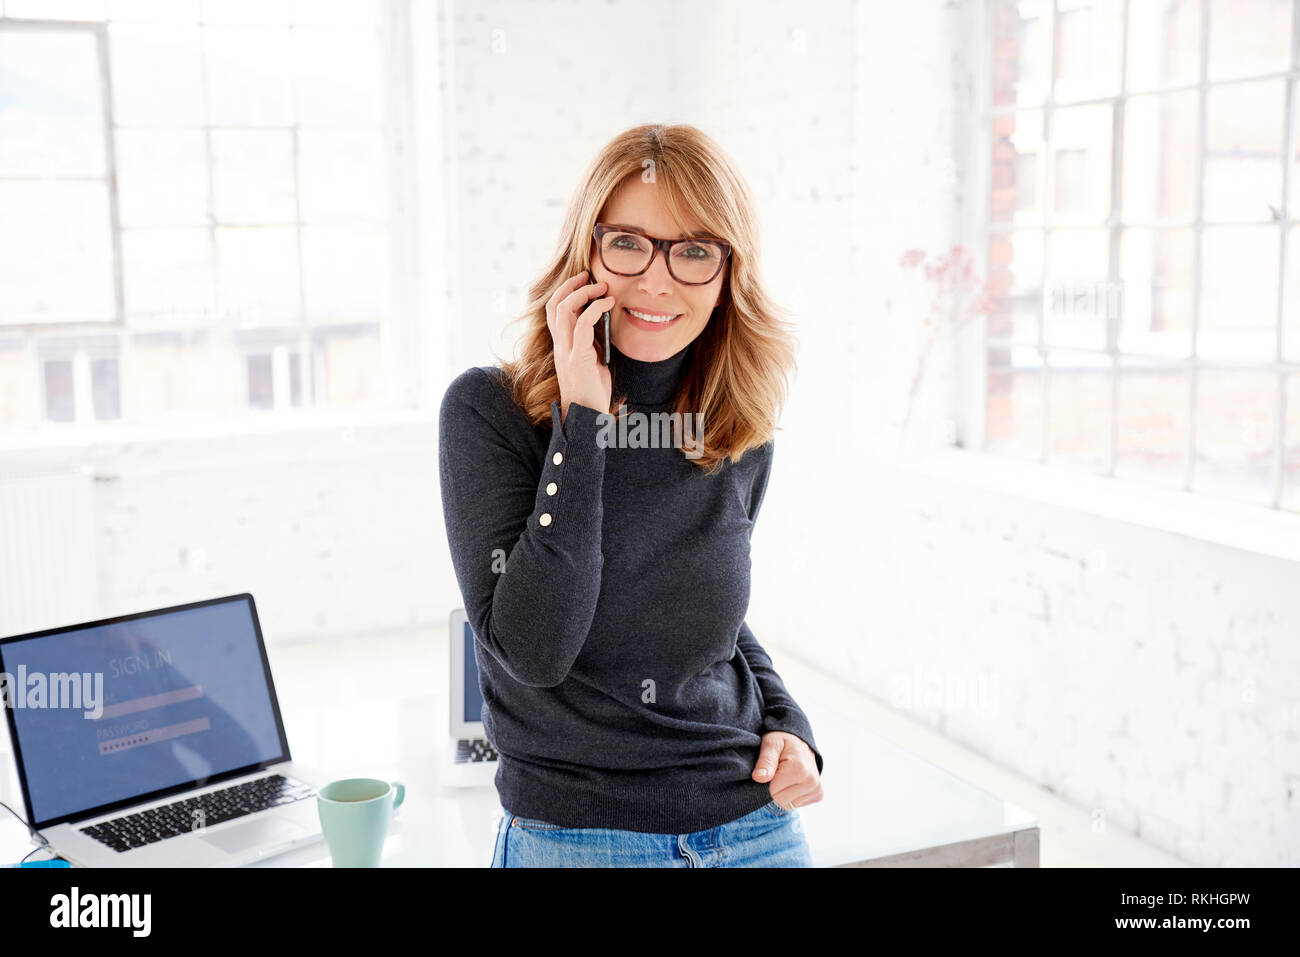 9c3b9836e85 Portrait of happy casual businesswoman using her mobile phone and making a  call while standing in